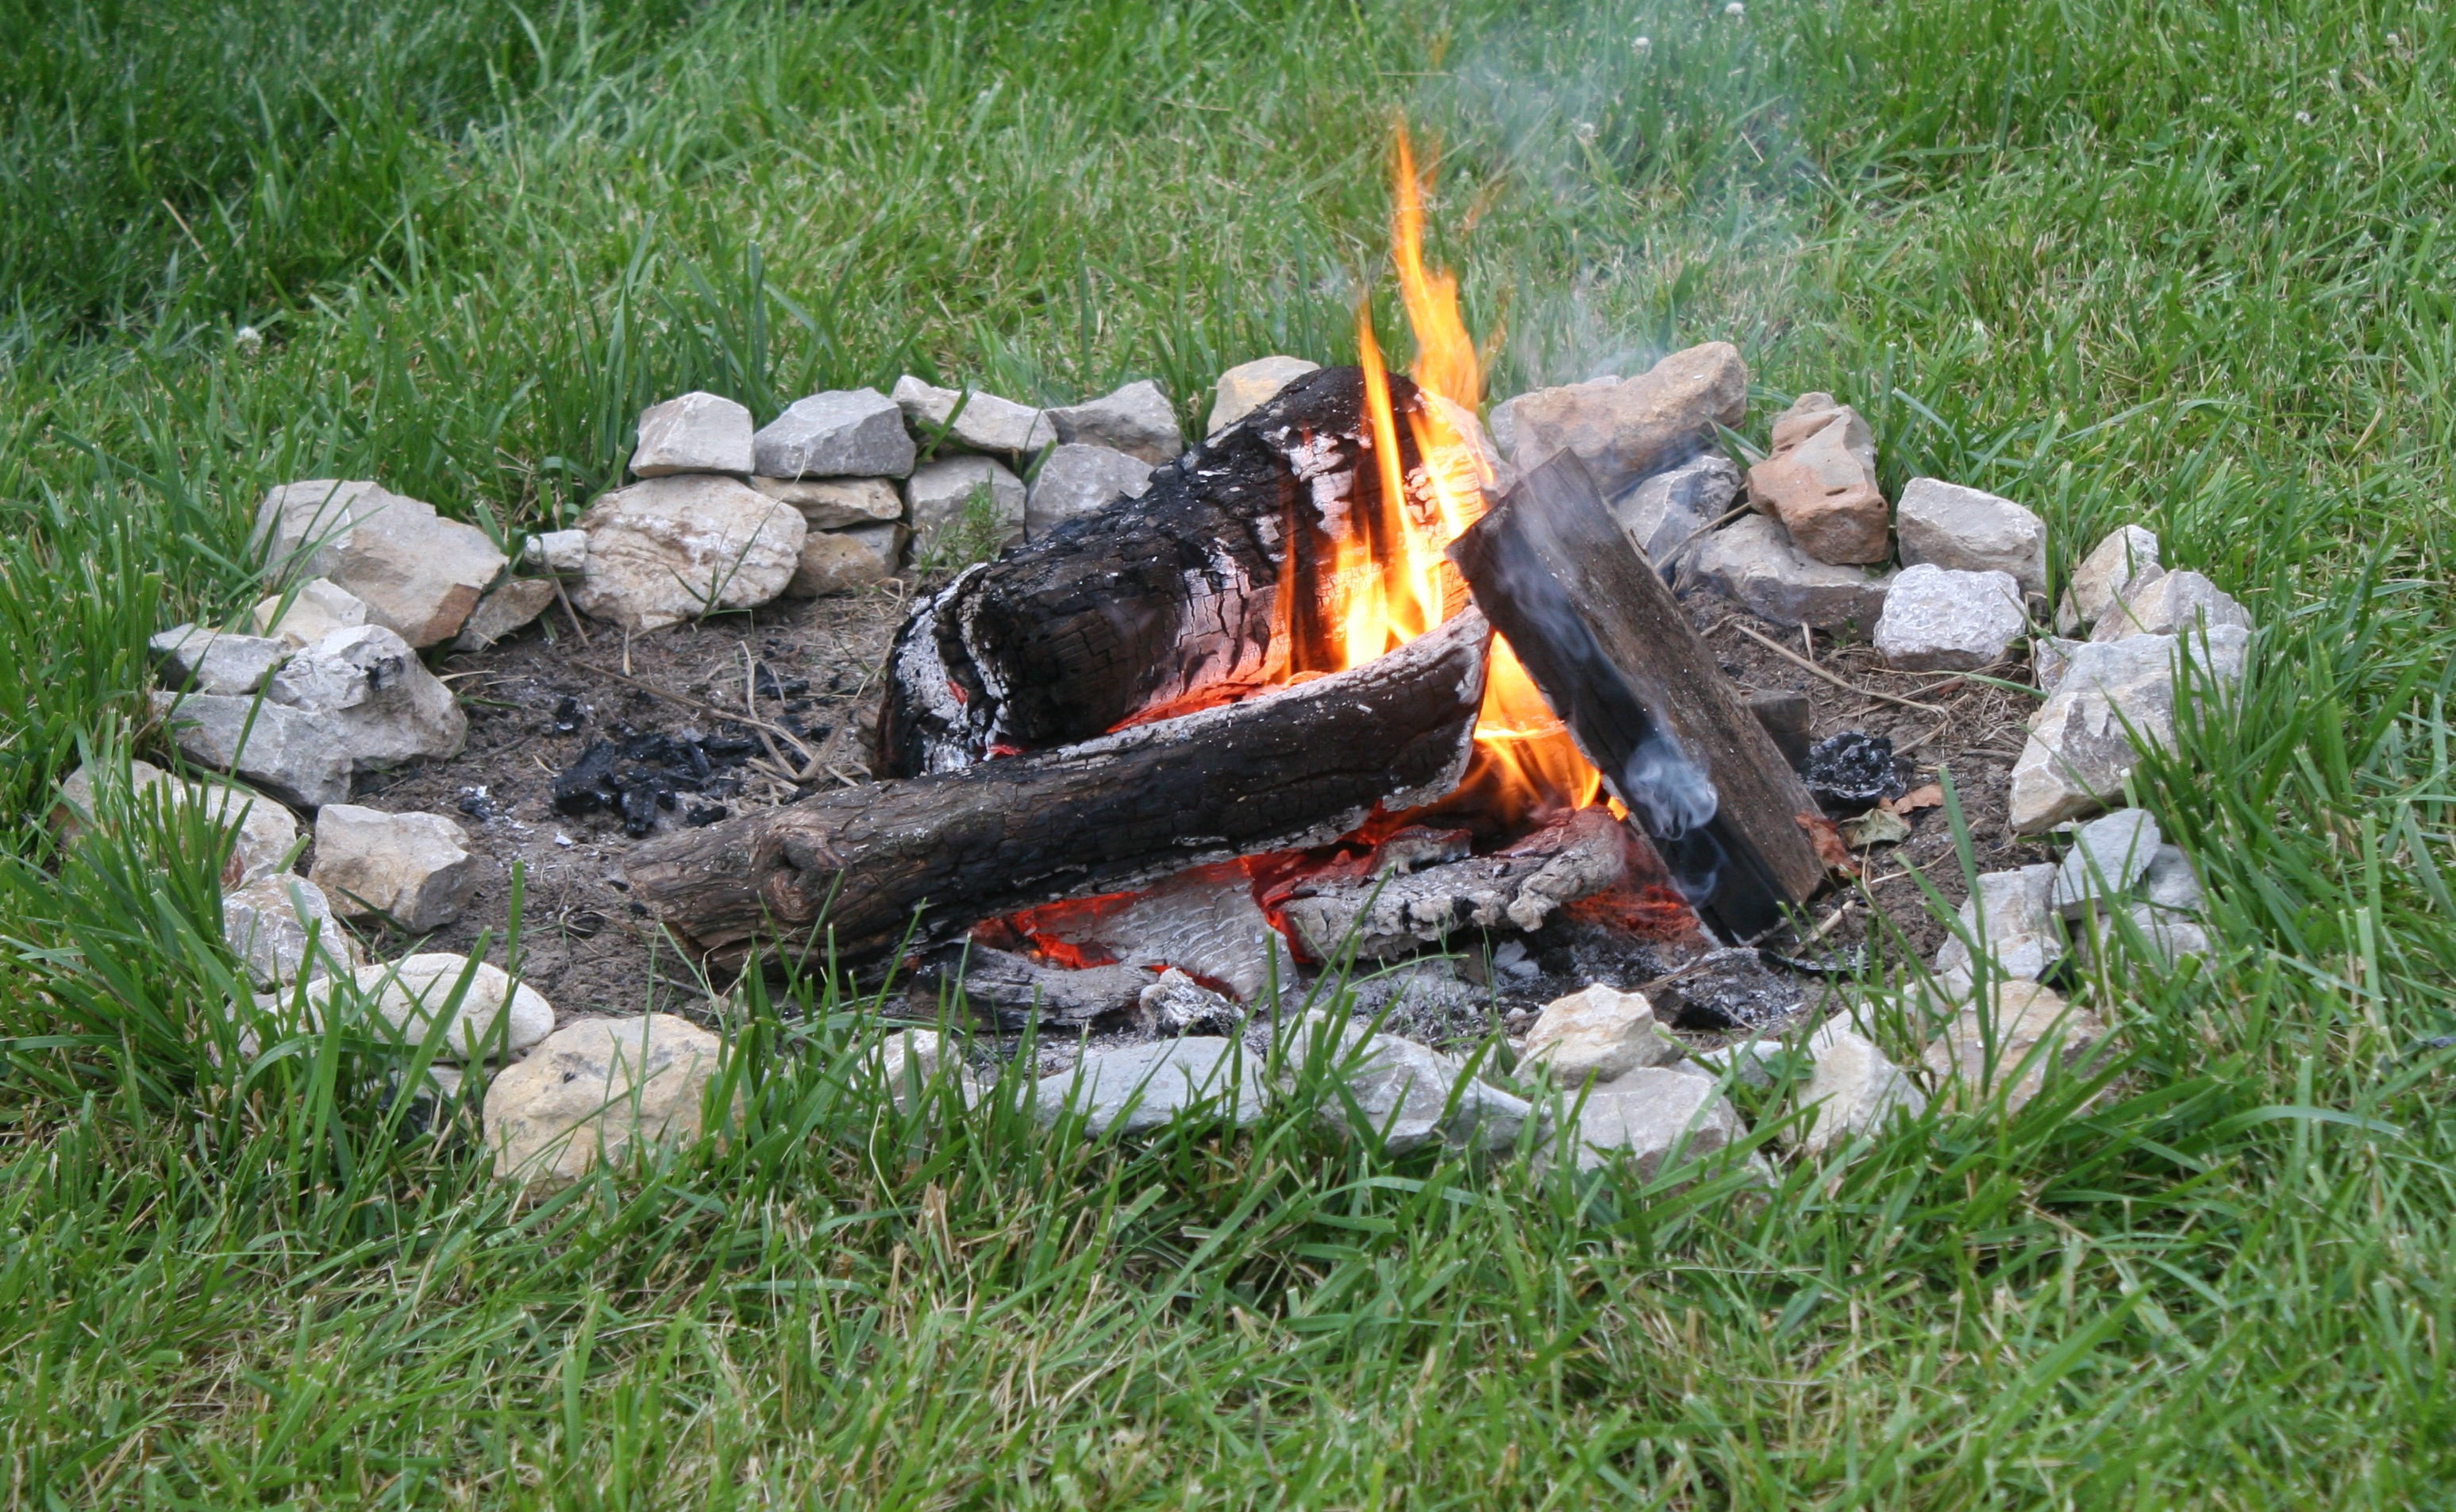 Camping On A Motorcycle And The Dangers Of Fires